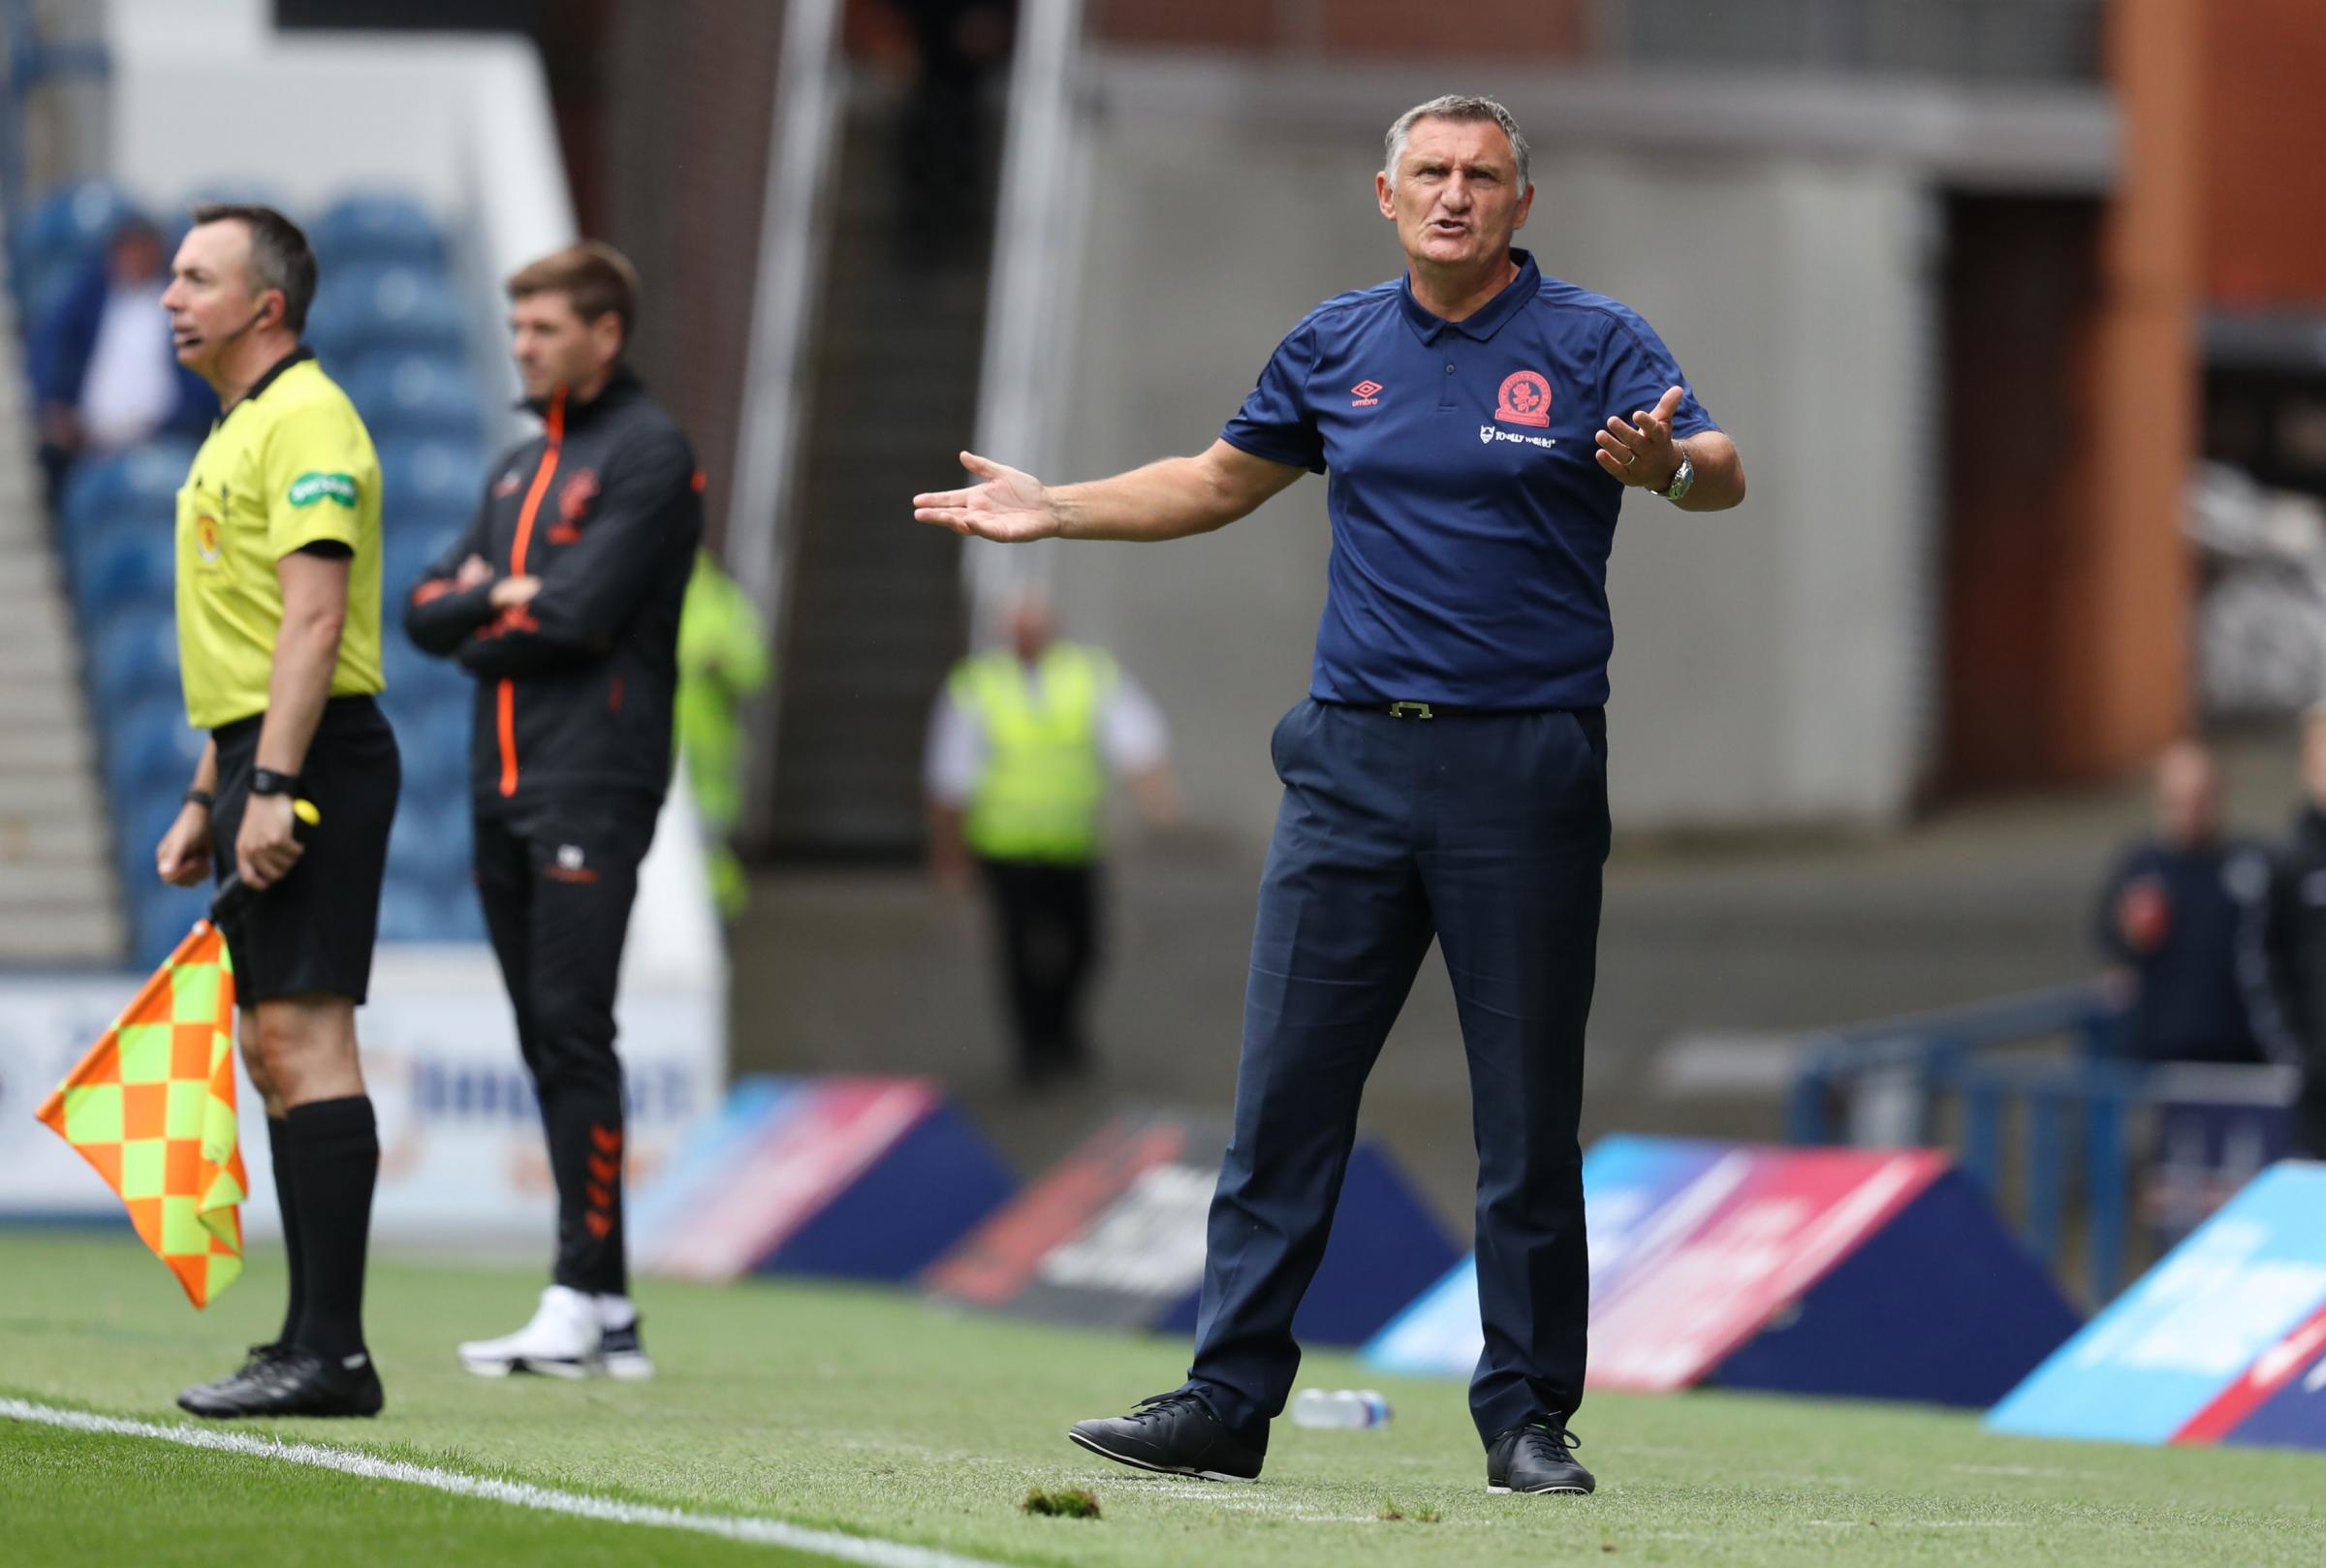 Tony Mowbray reckons there are similarities between Rangers' style and that of Liverpool